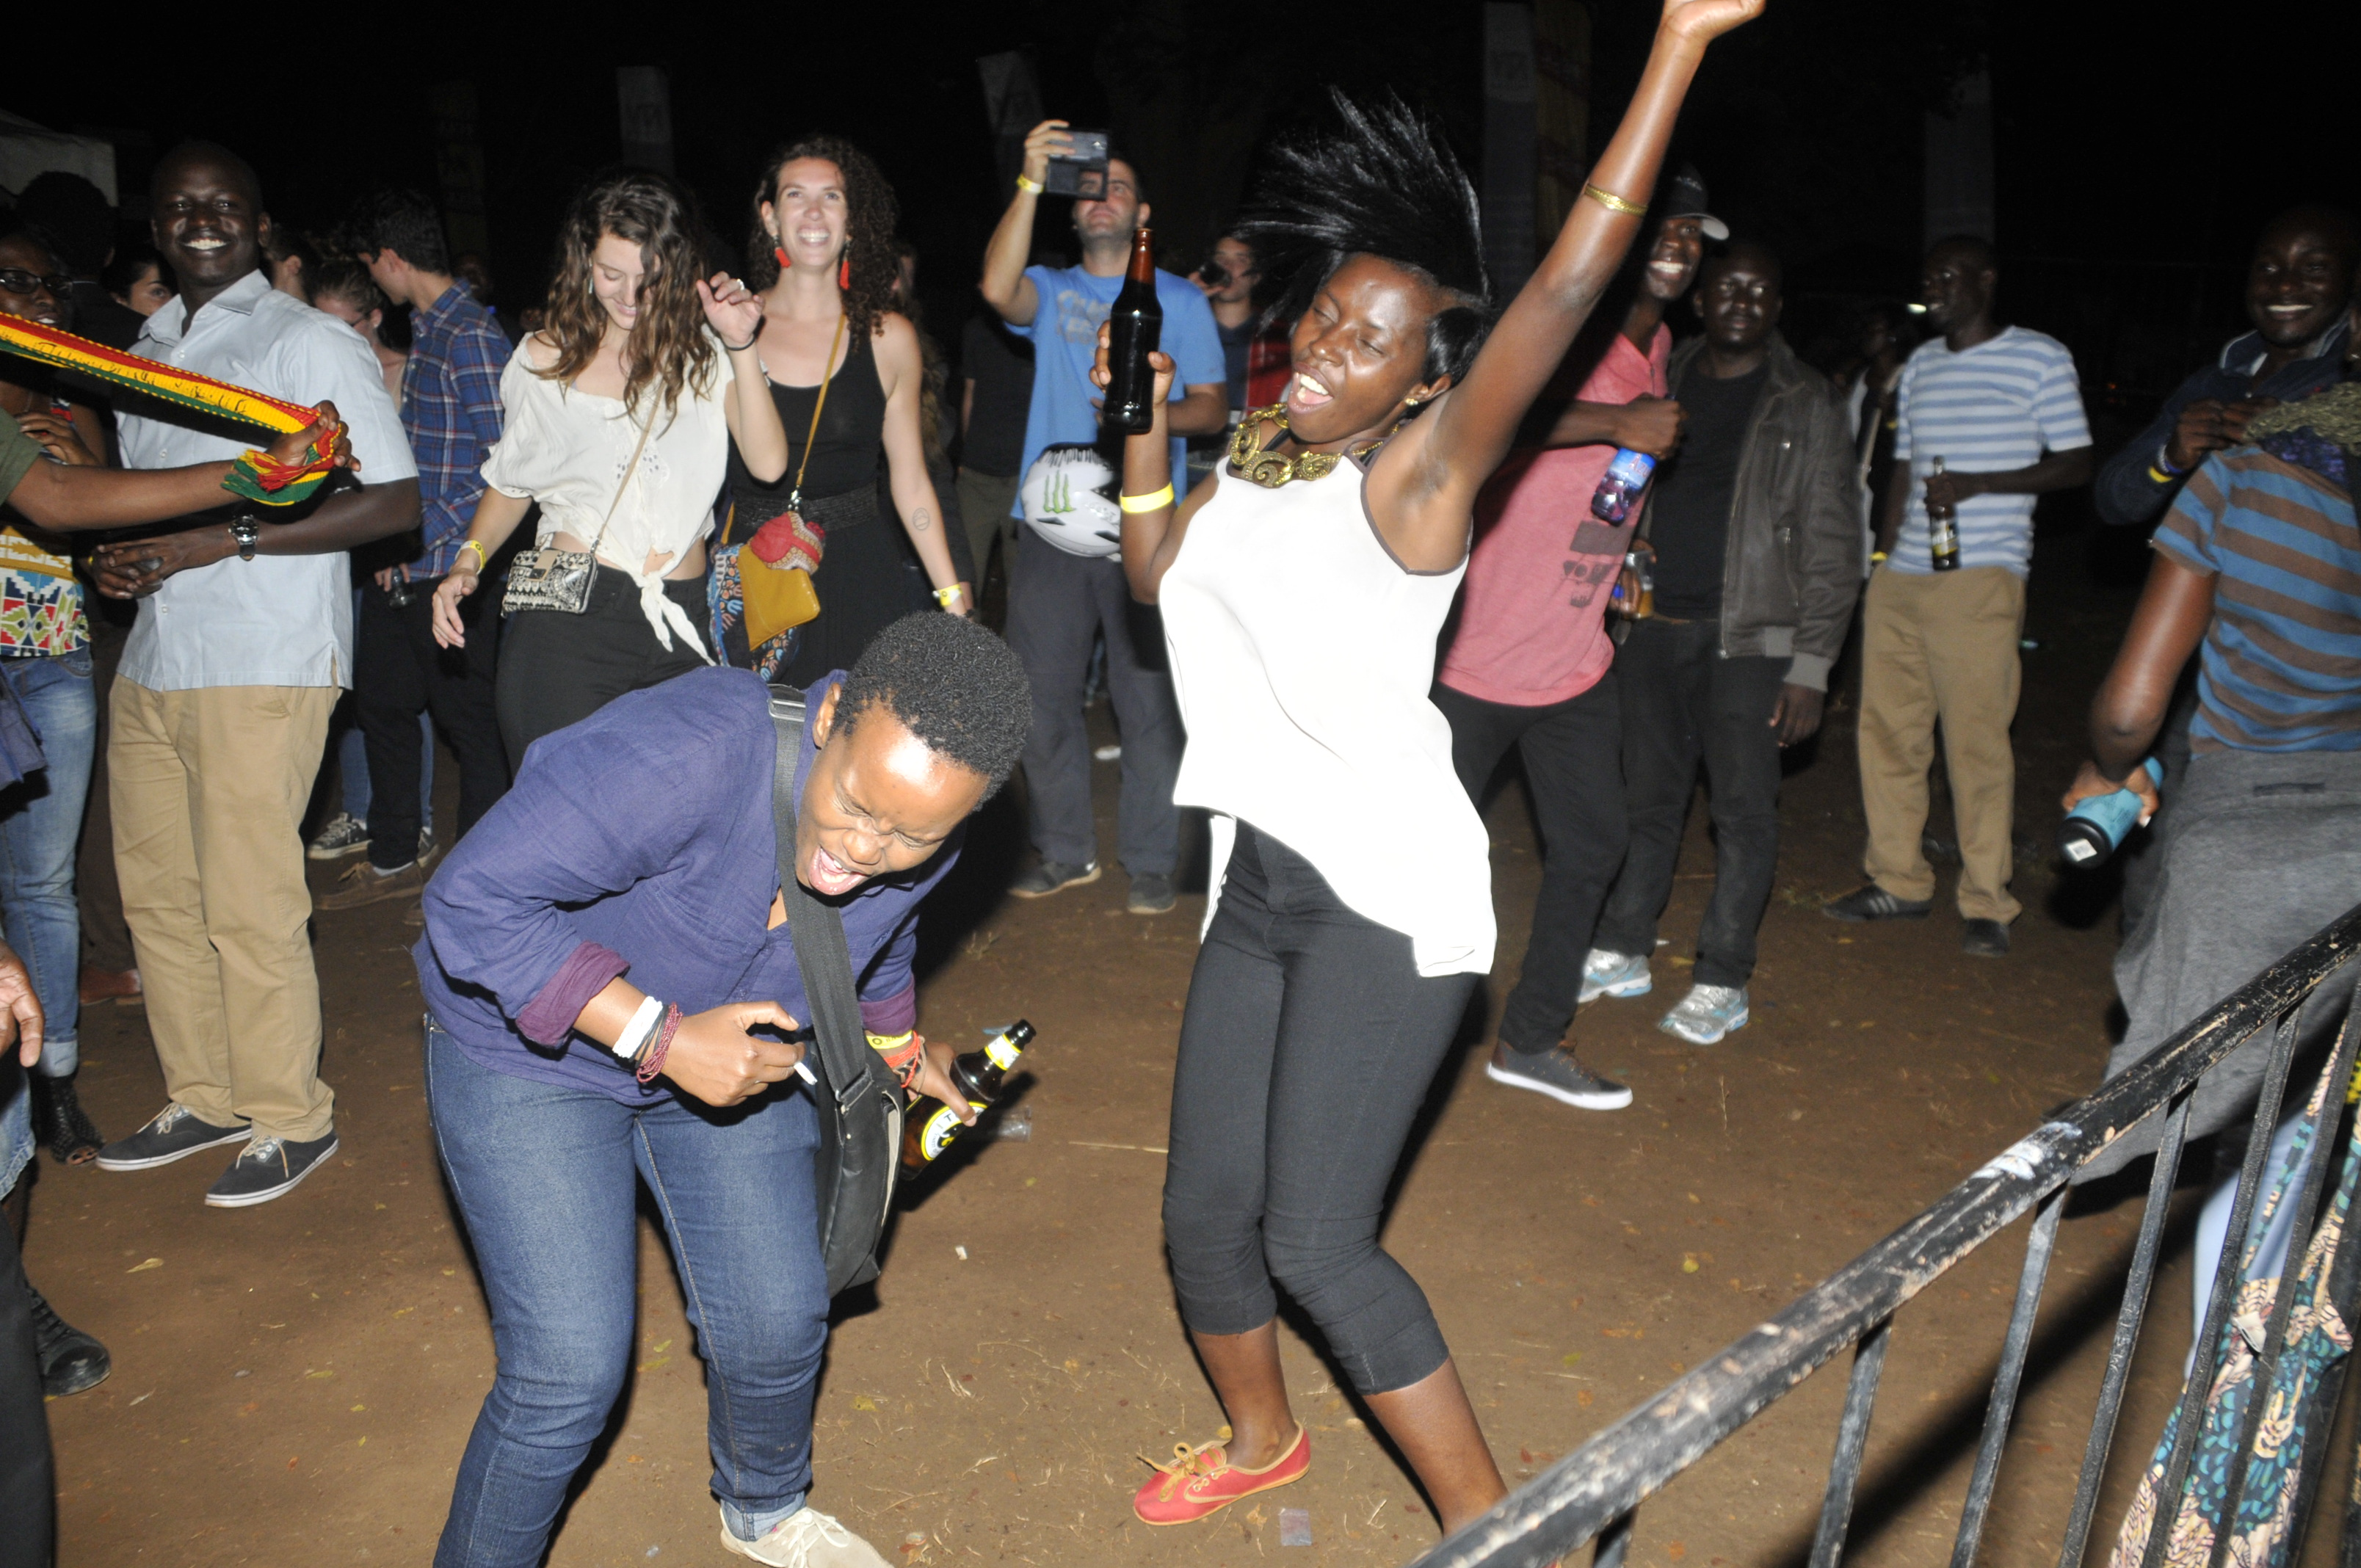 revellers-party-away-at-festival